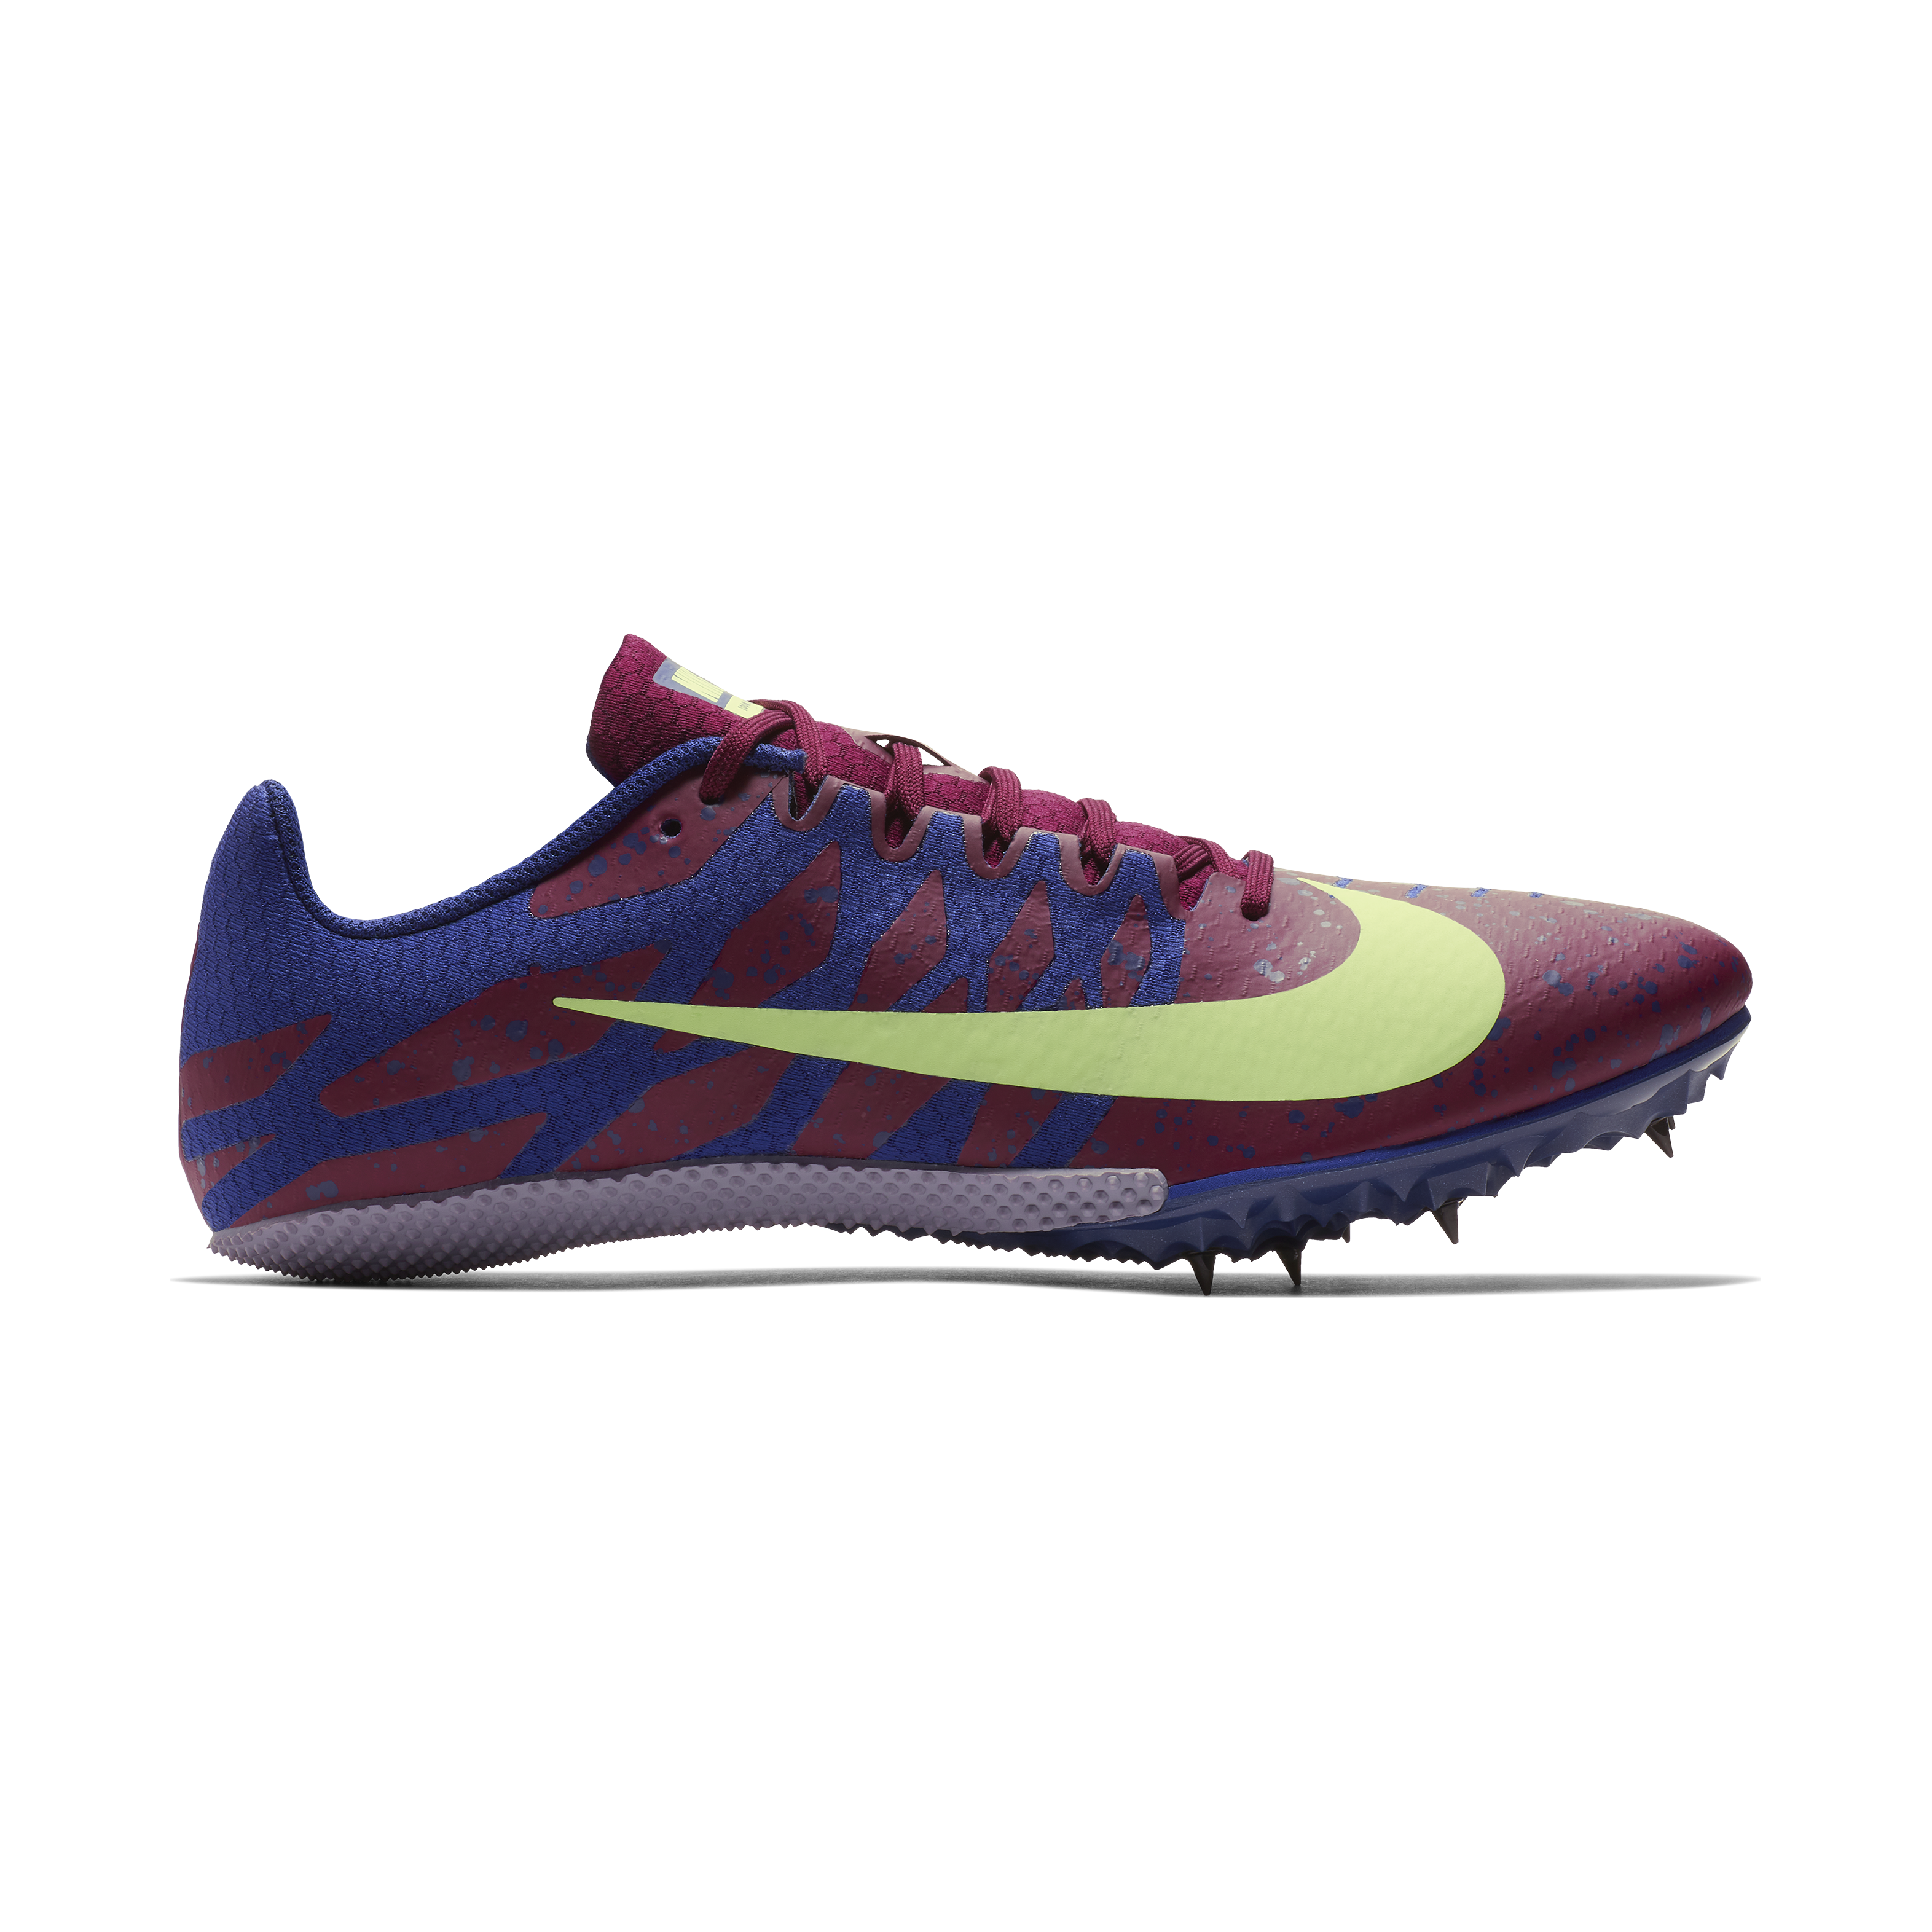 bc2e638214f Nike zoom rival running spikes poobie naidoos png 3144x3144 Nike running  shoe athletic transparent sports